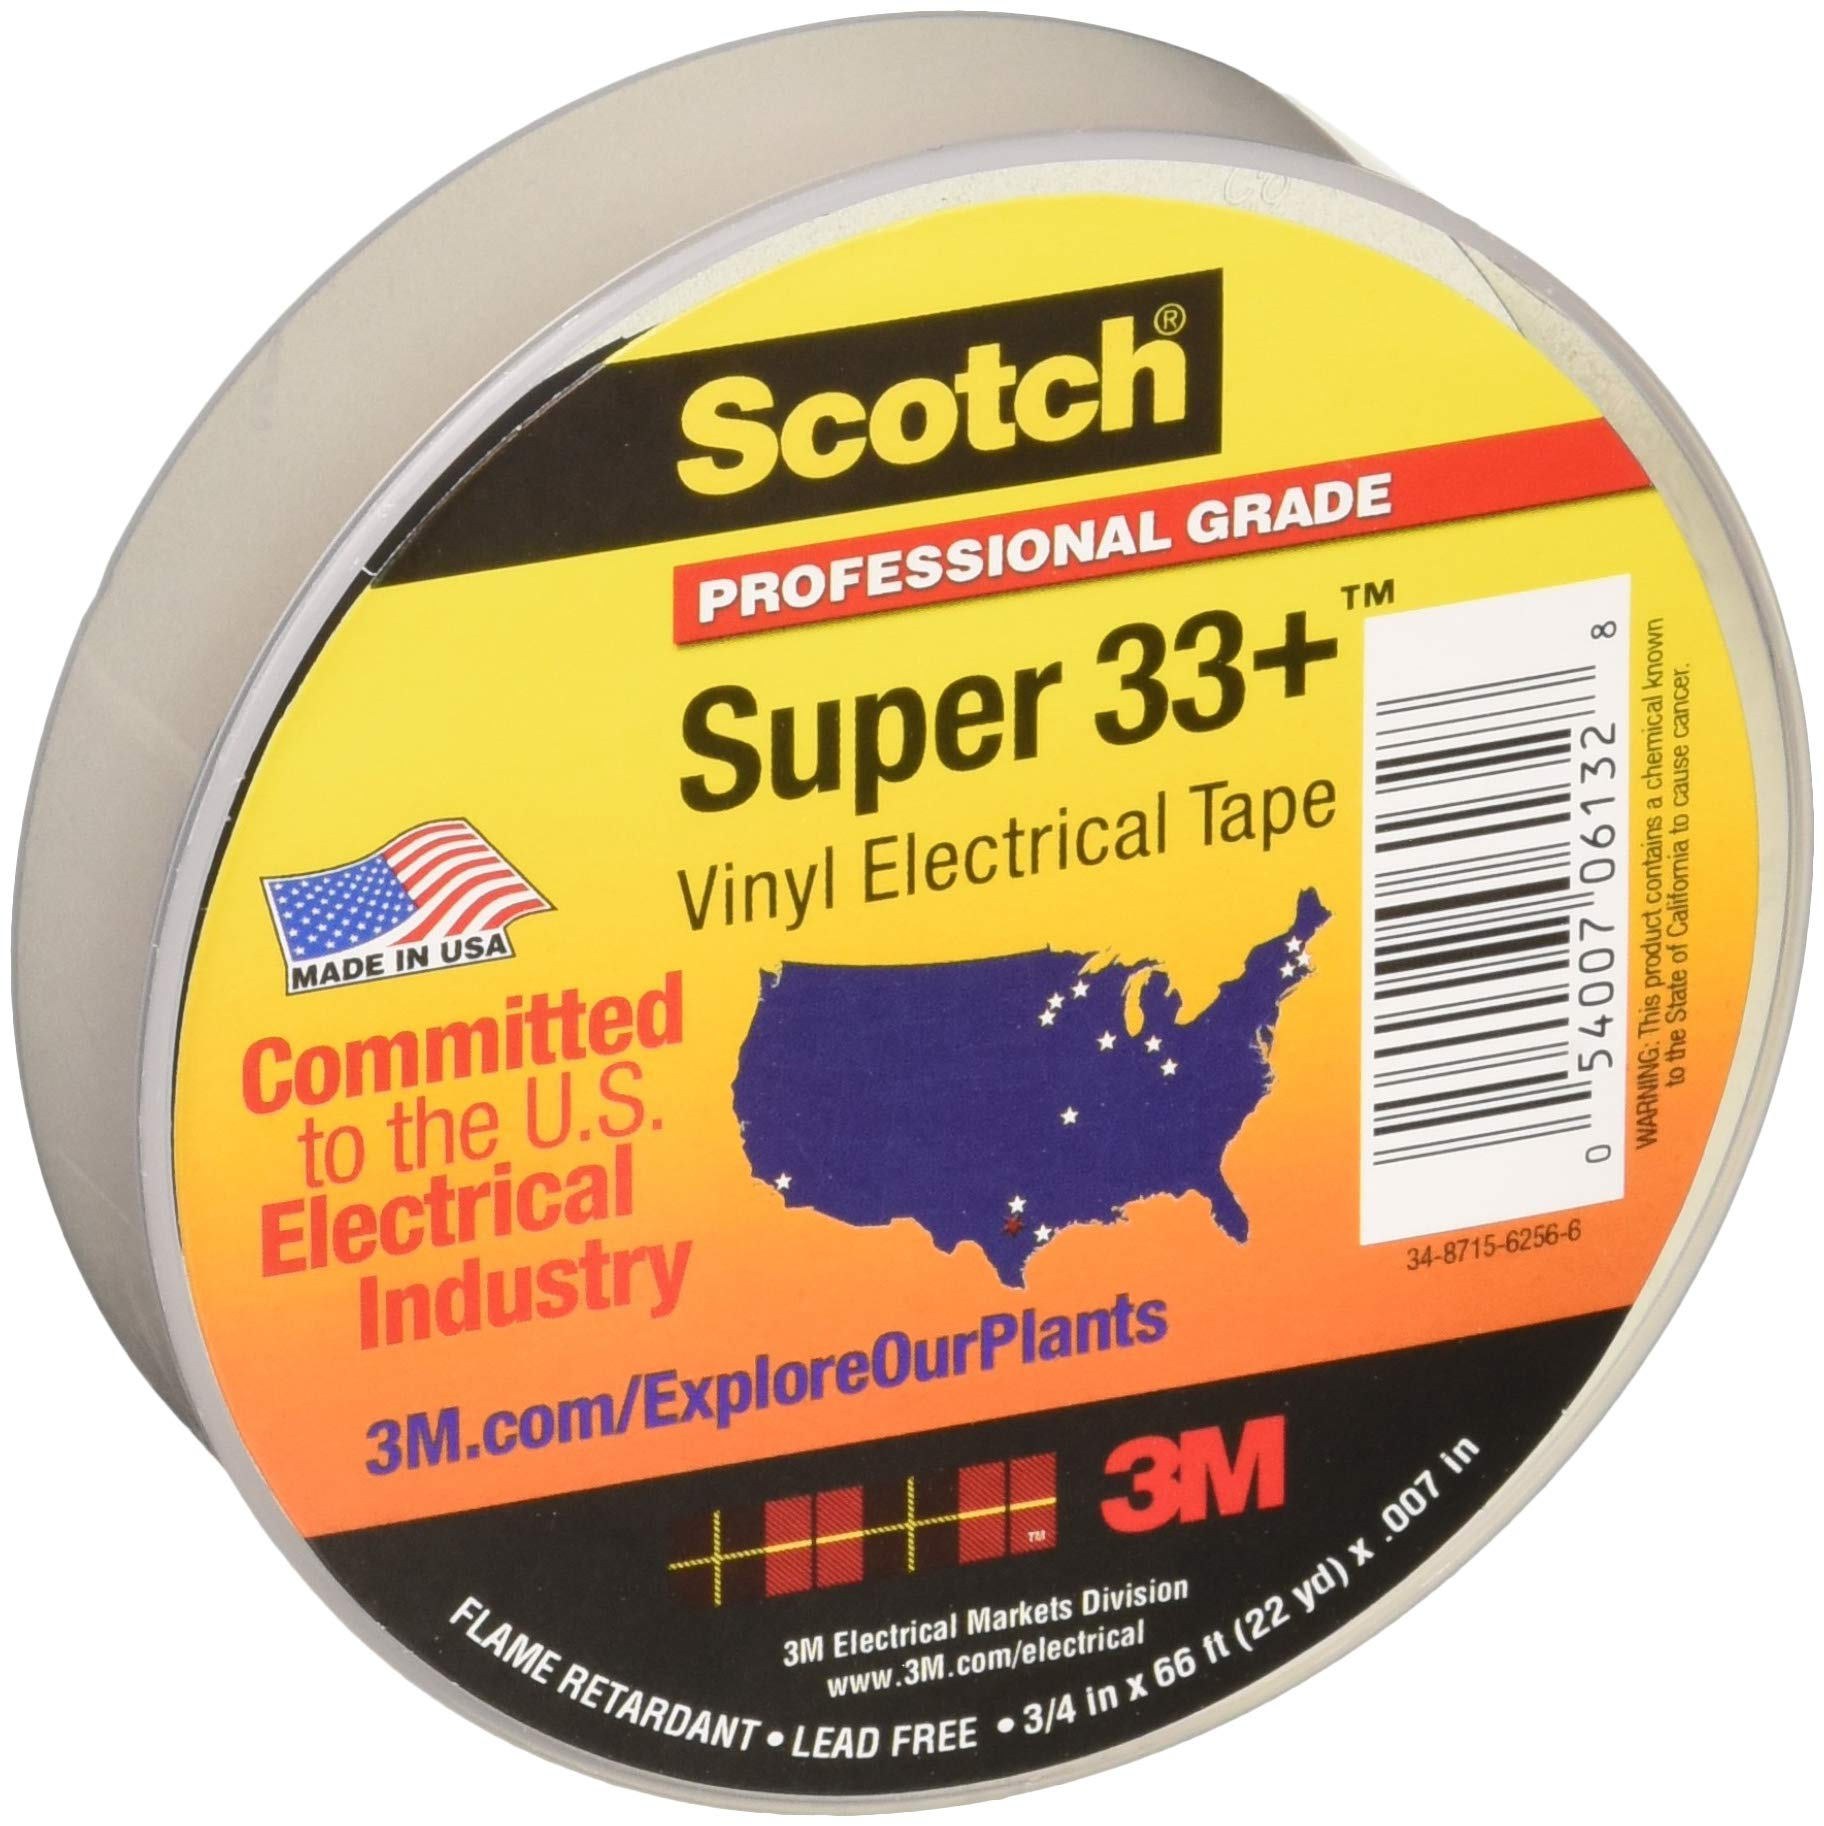 3M 06132 Scotch Super 33+ Cinta Eléctrica de Vinilo, 19 mm x 20 m